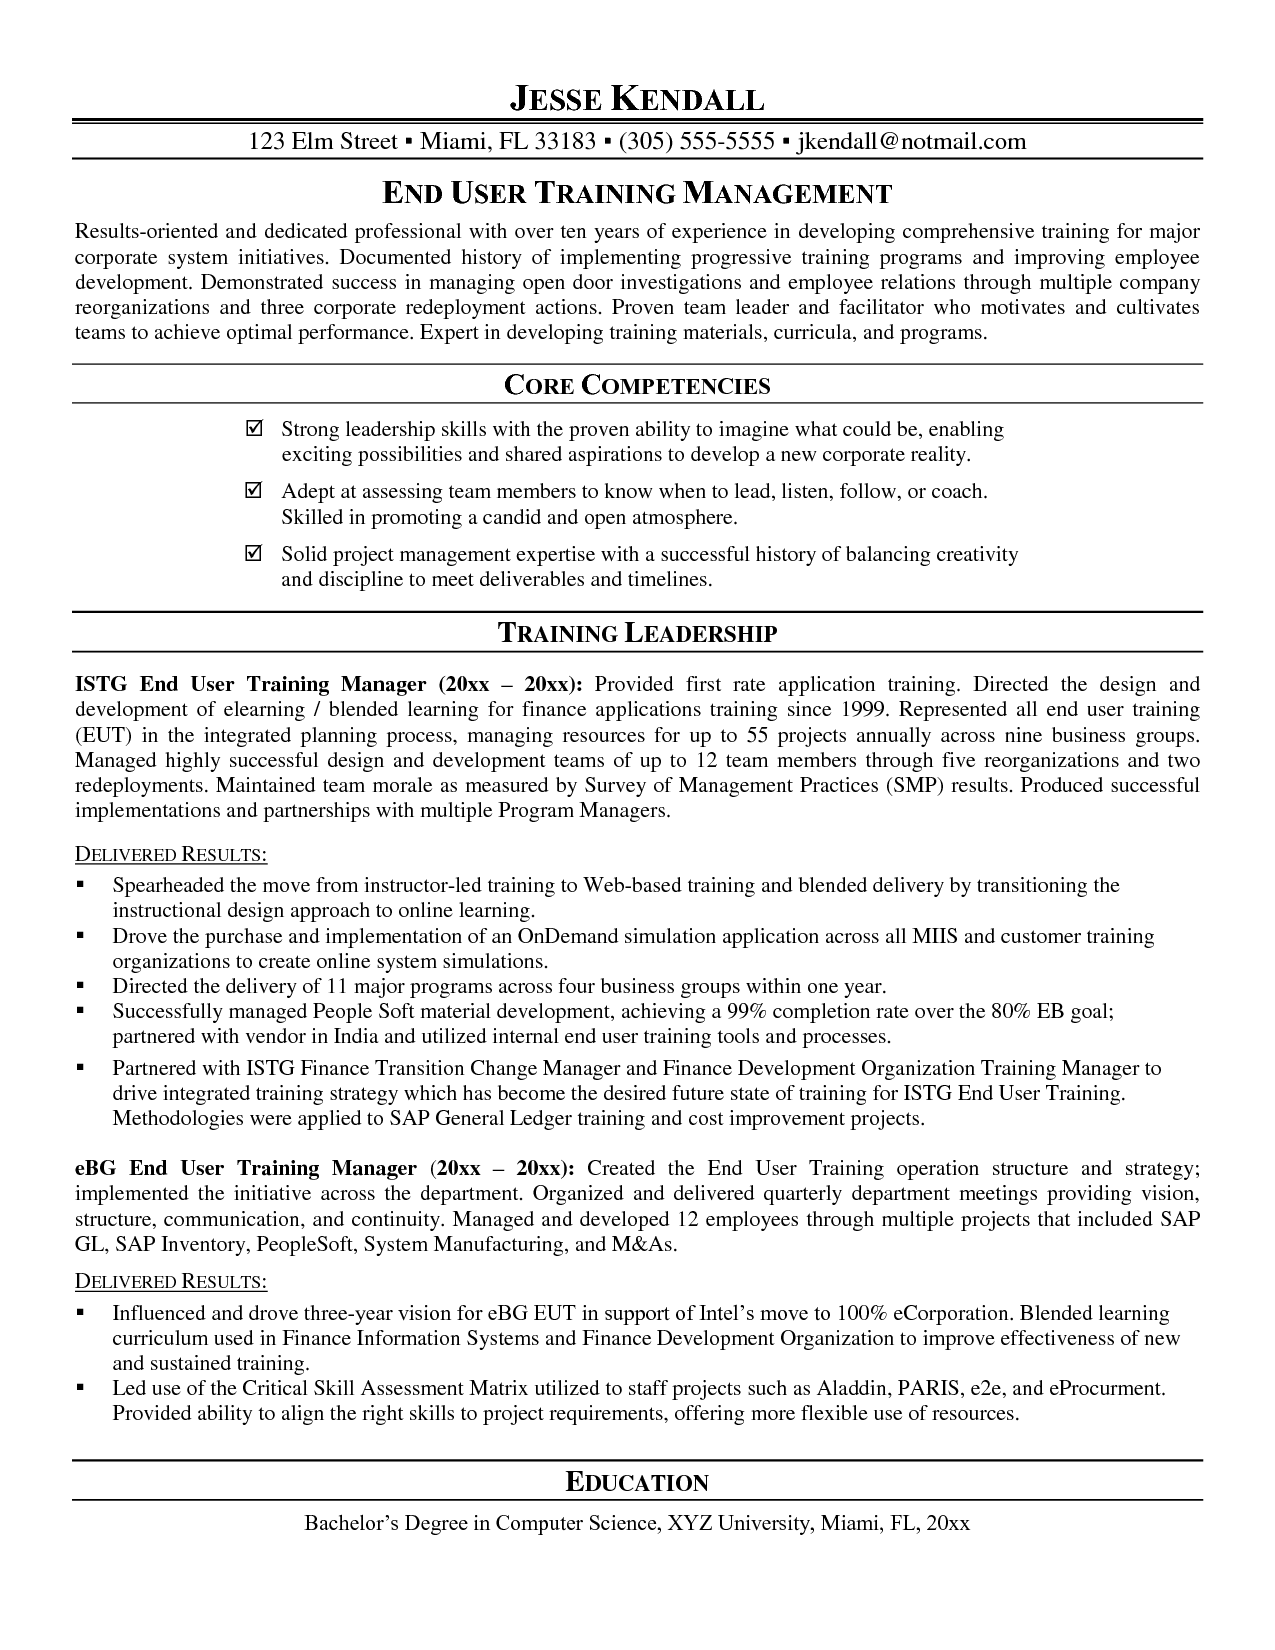 Training Manager Resume   Http://www.resumecareer.info/training